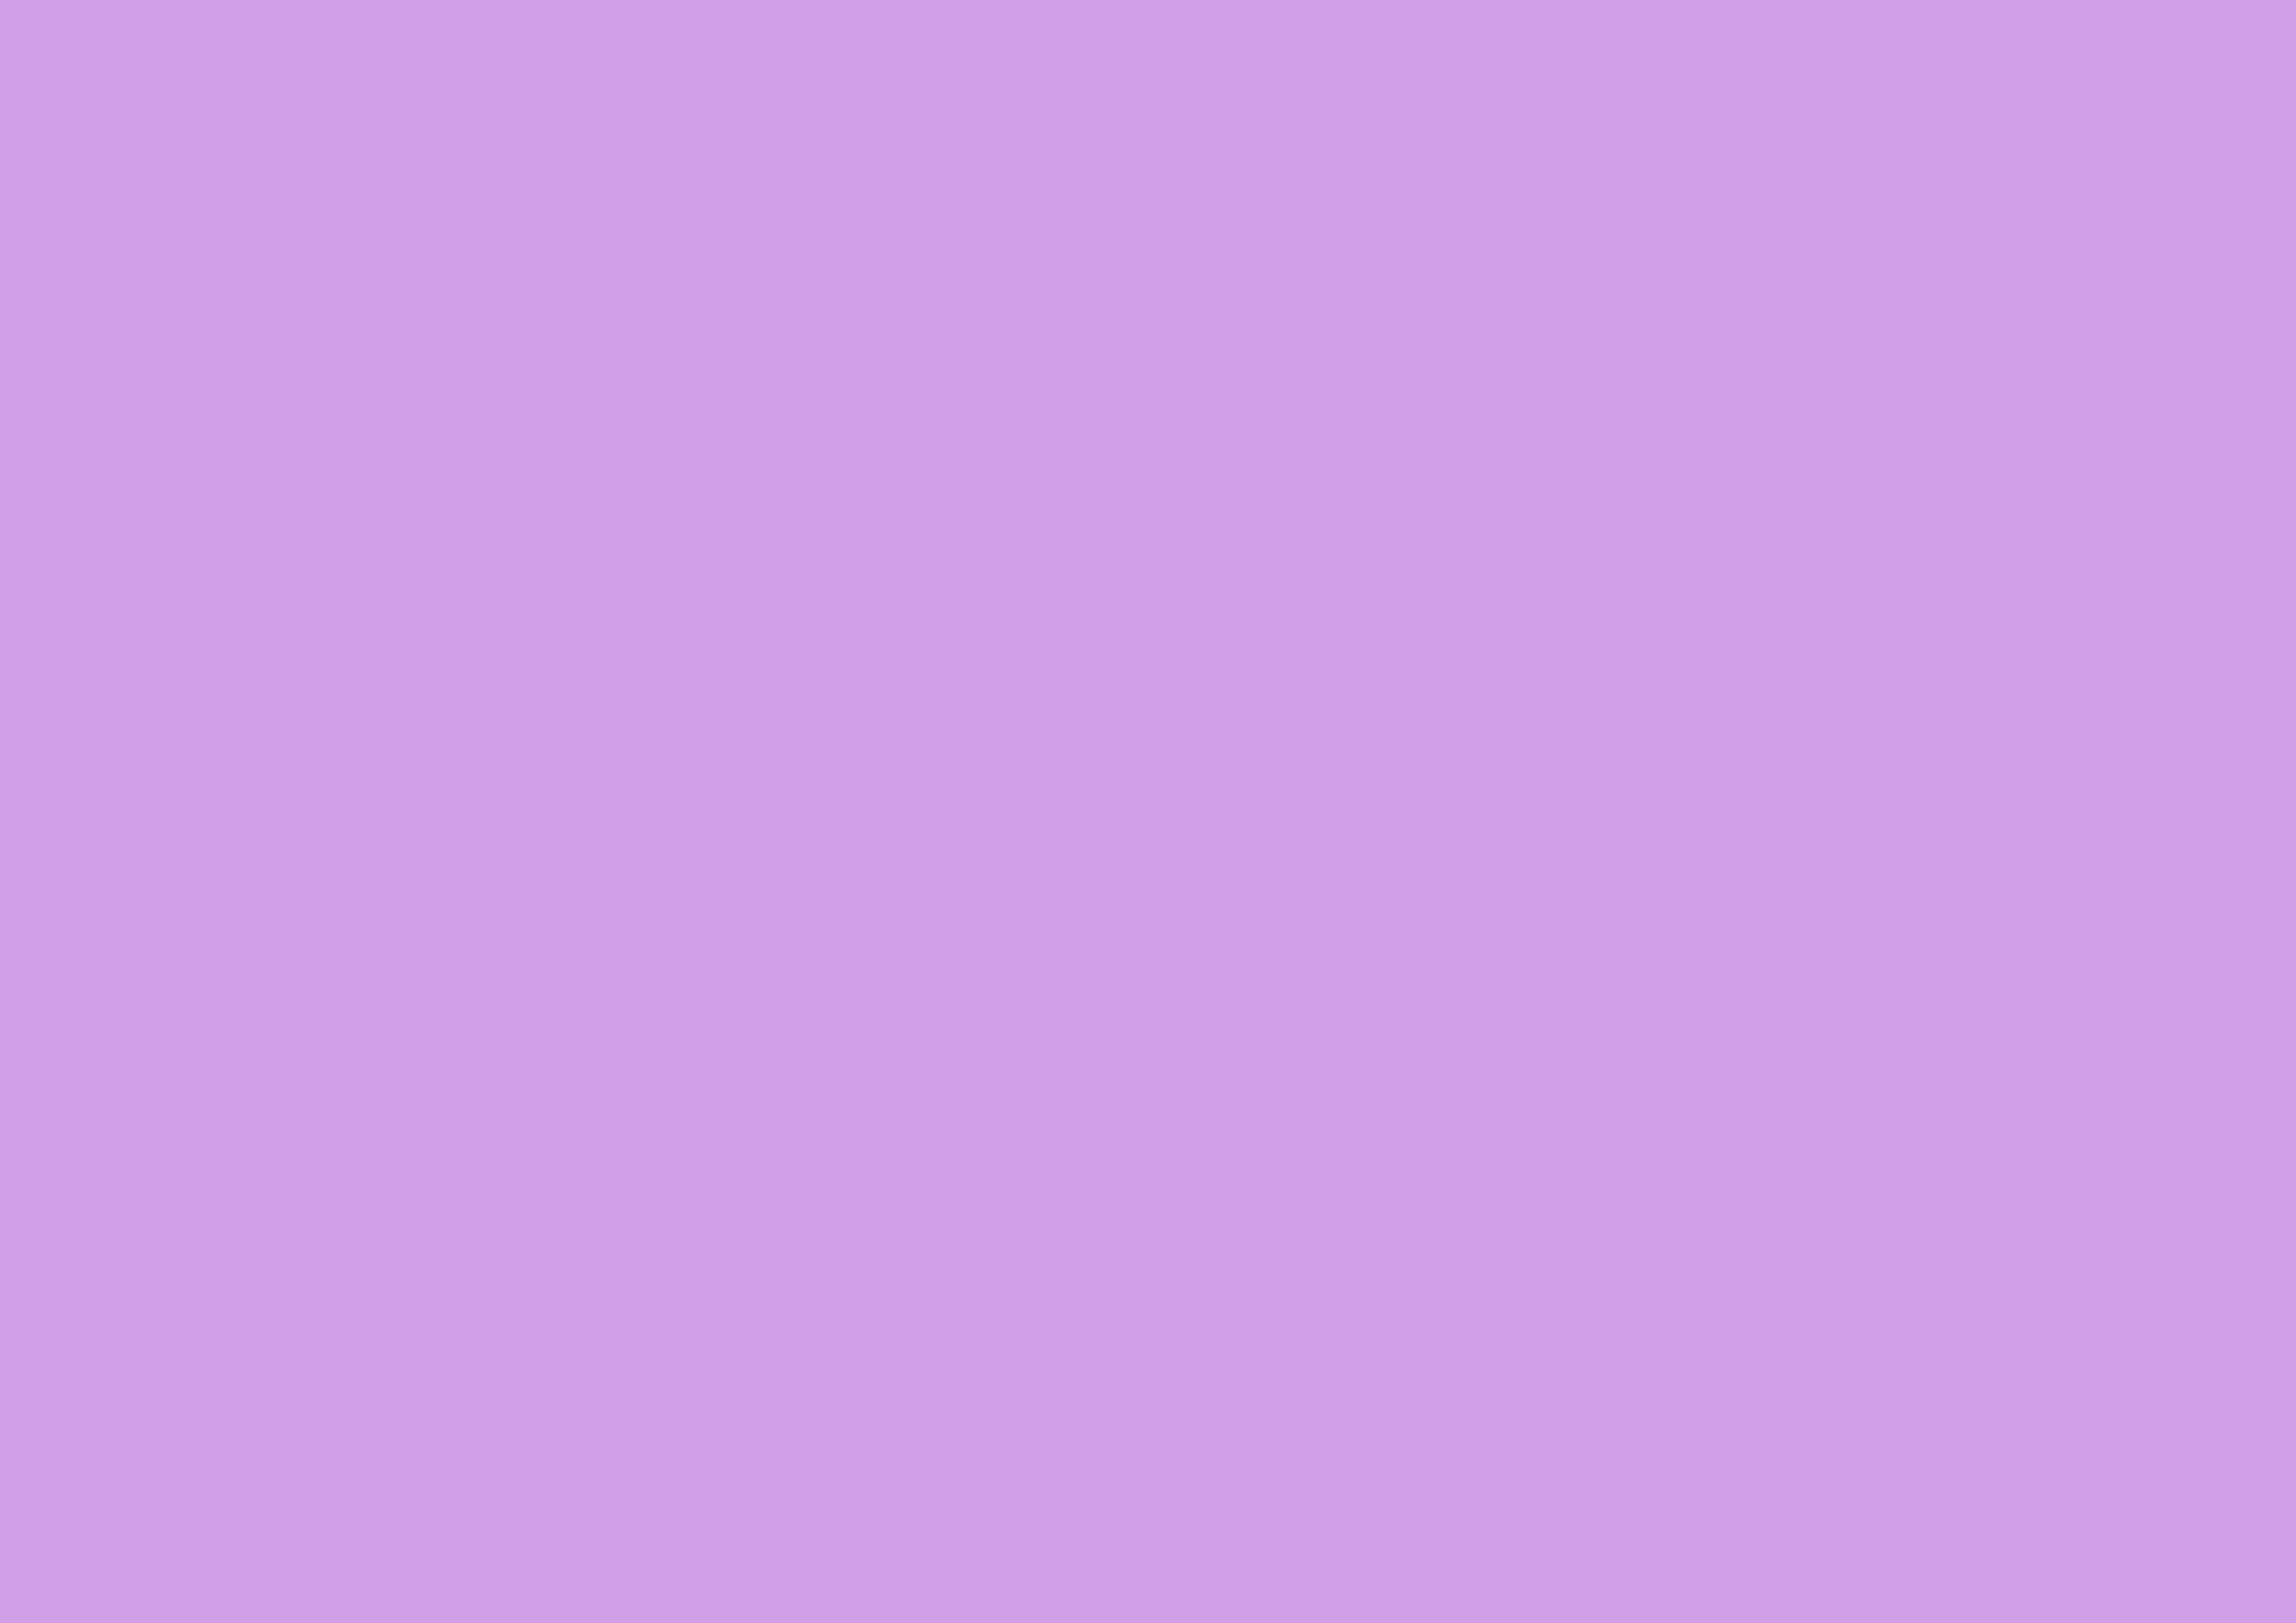 3508x2480 Bright Ube Solid Color Background